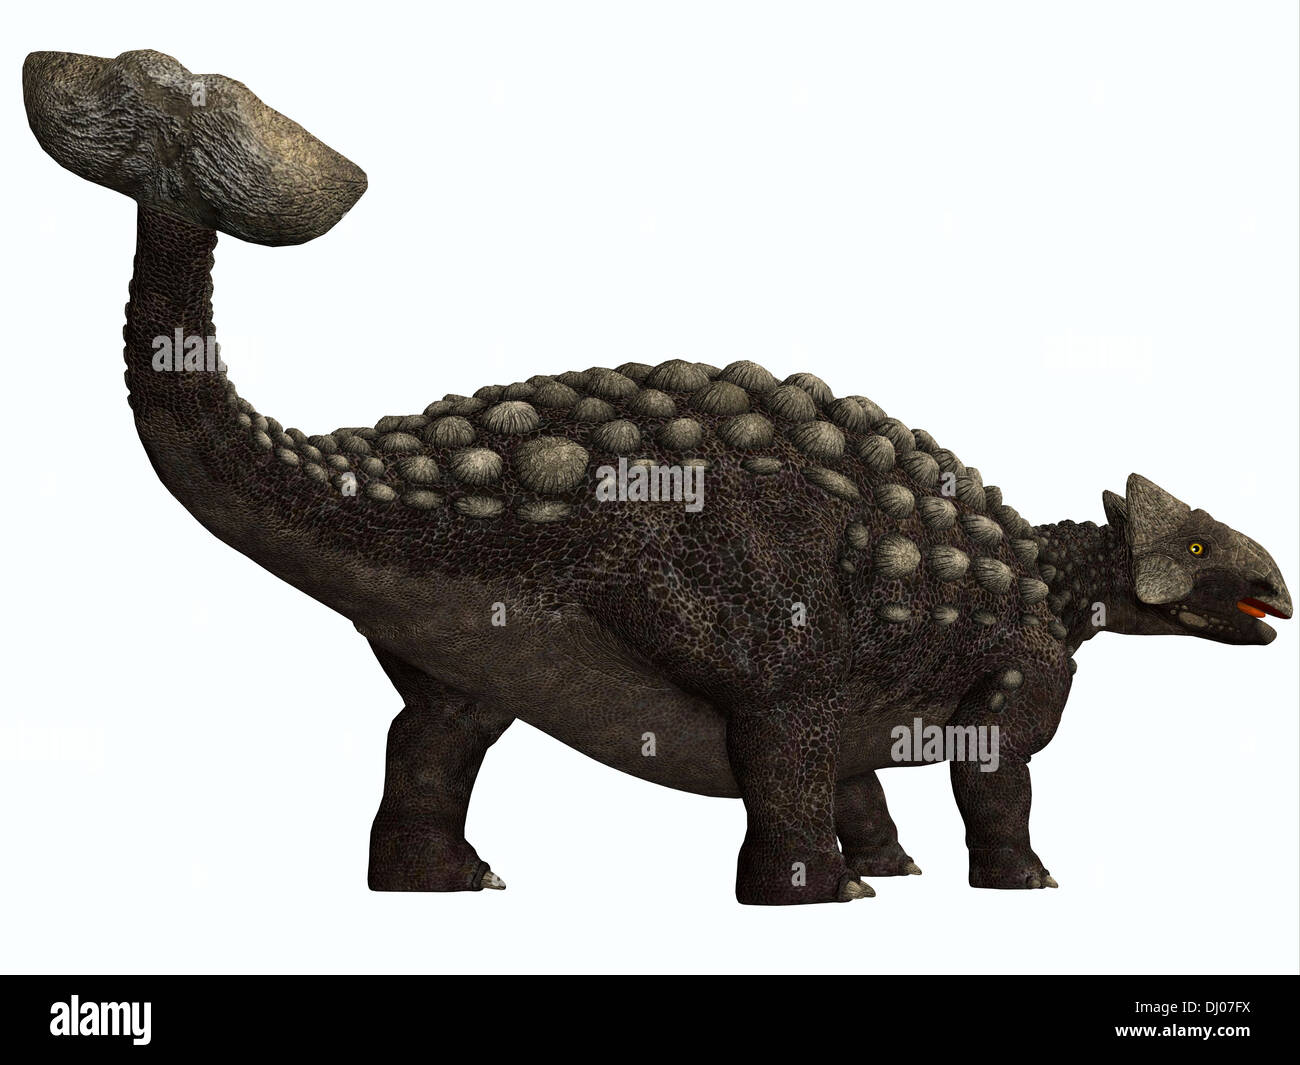 Ankylosaurus was a heavily armored herbivore dinosaur from the Cretaceous Period. - Stock Image